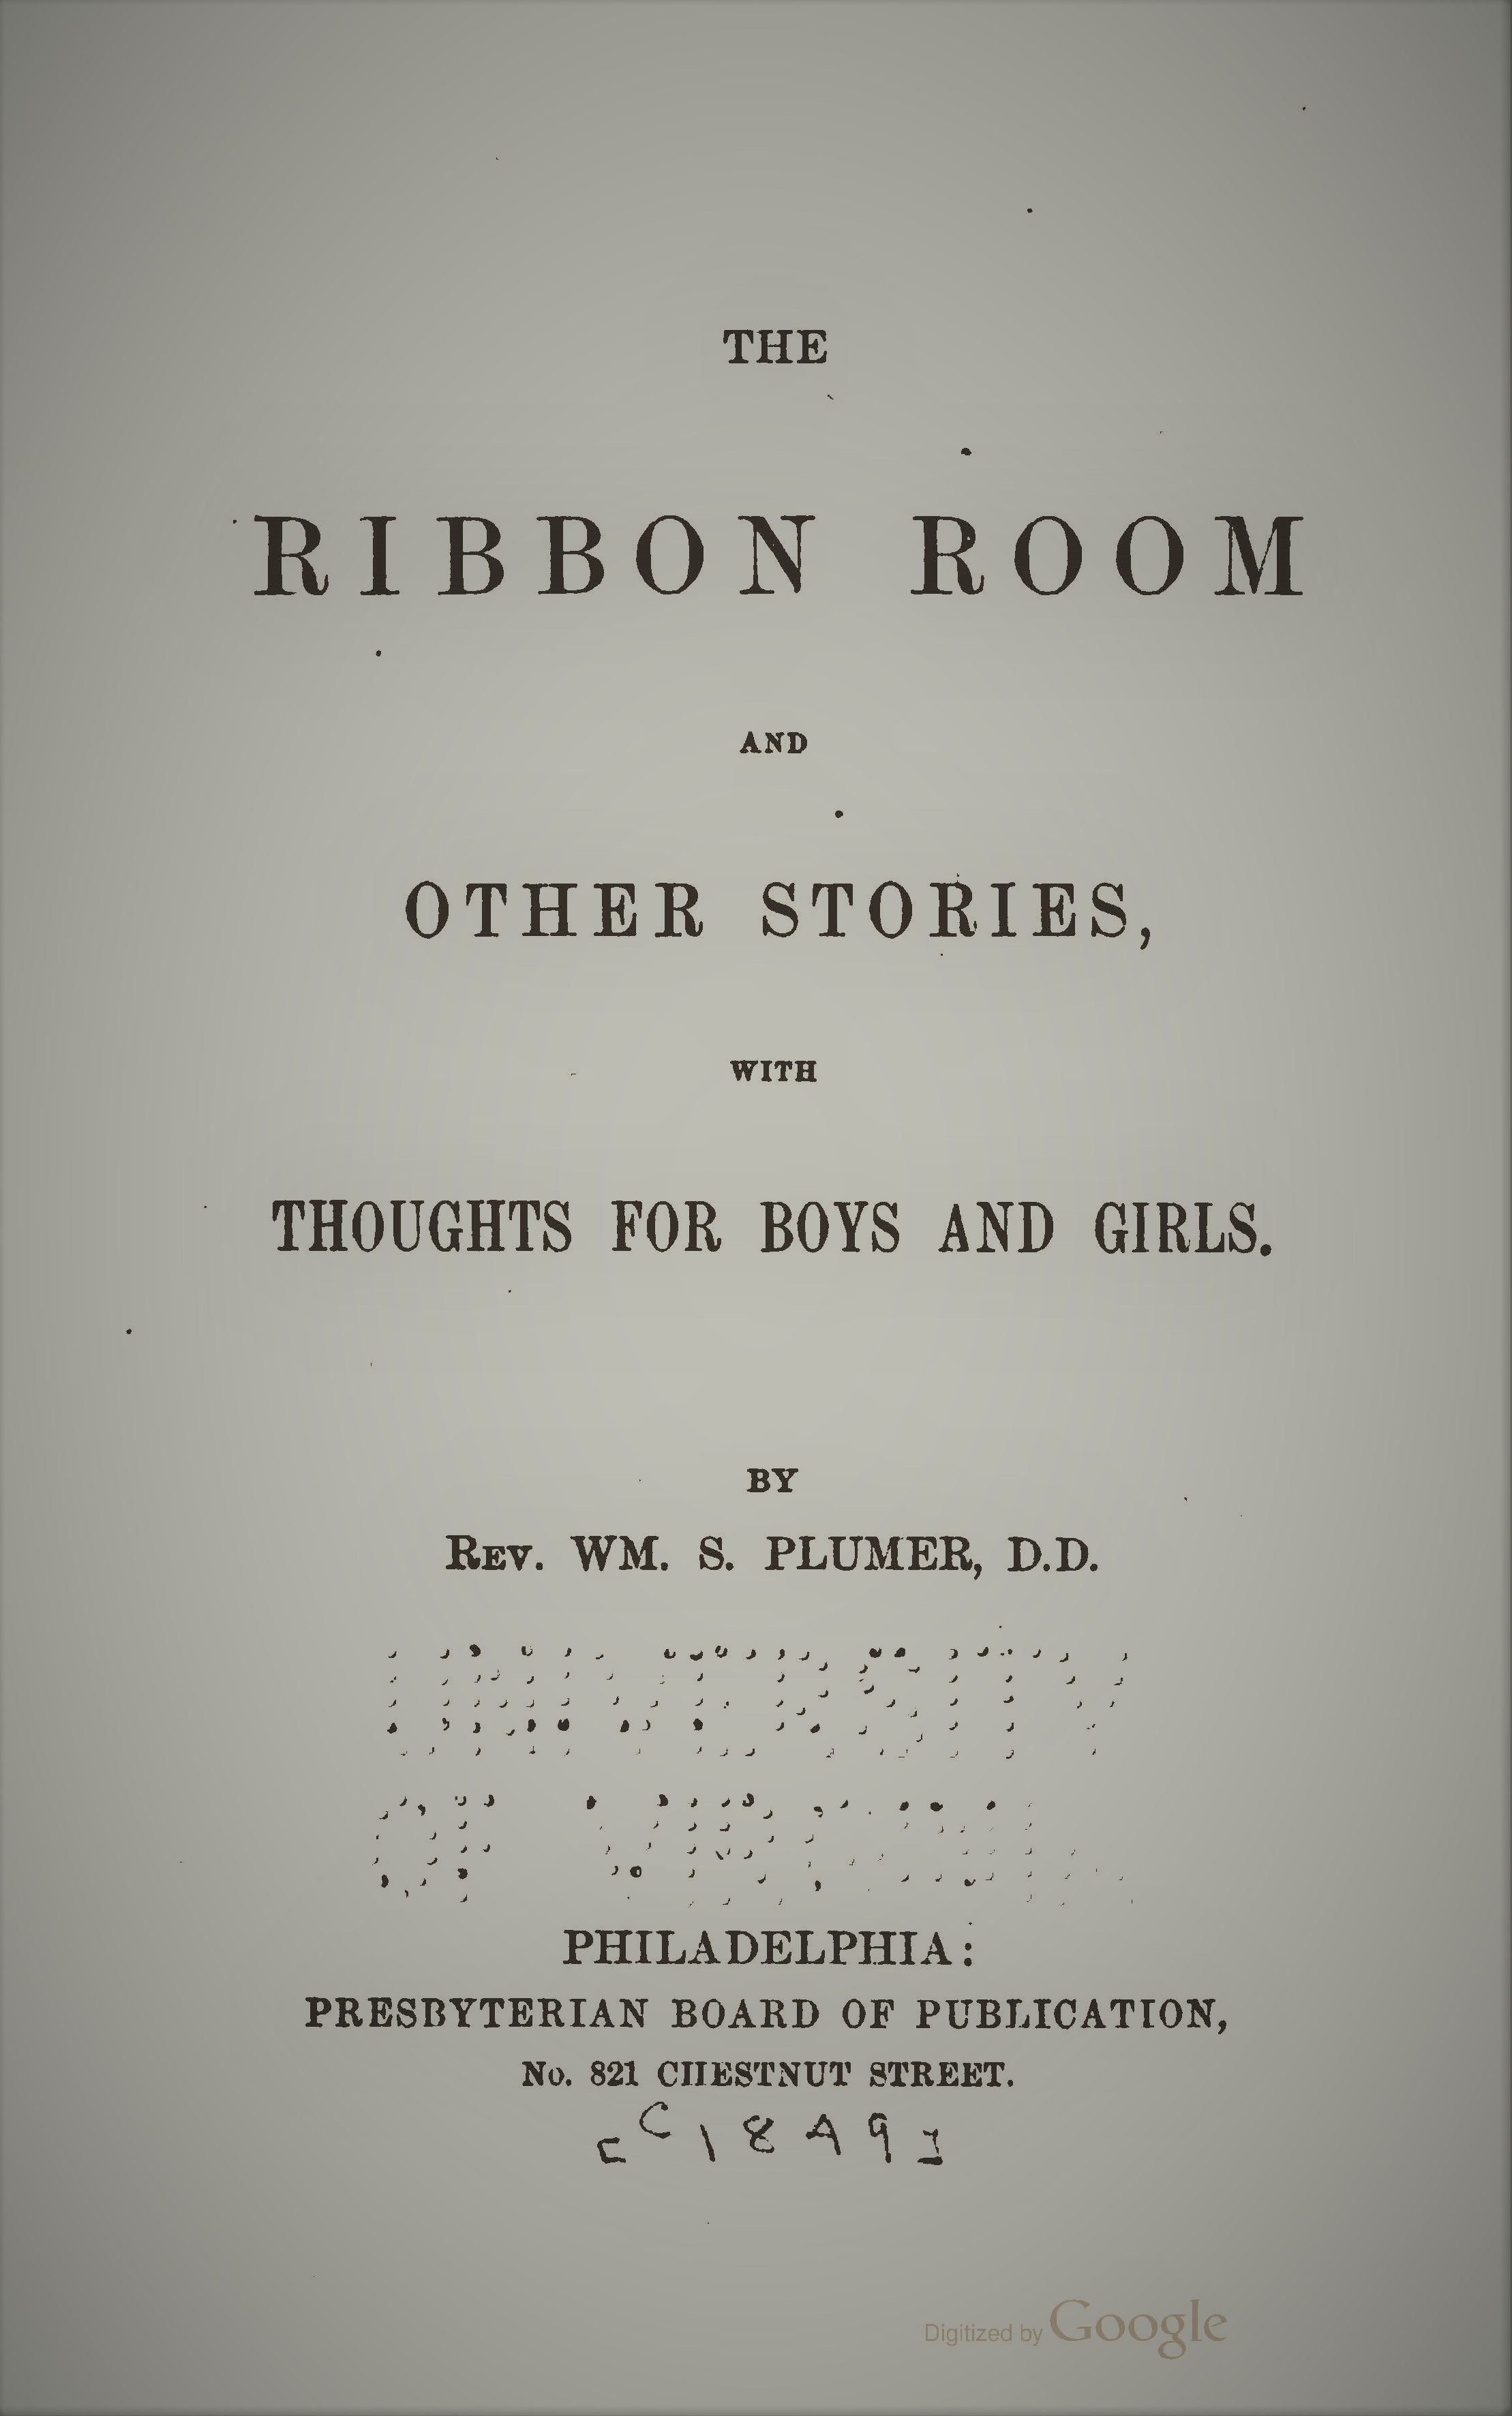 Plumer, The Ribbon Room and Other Stories.jpg